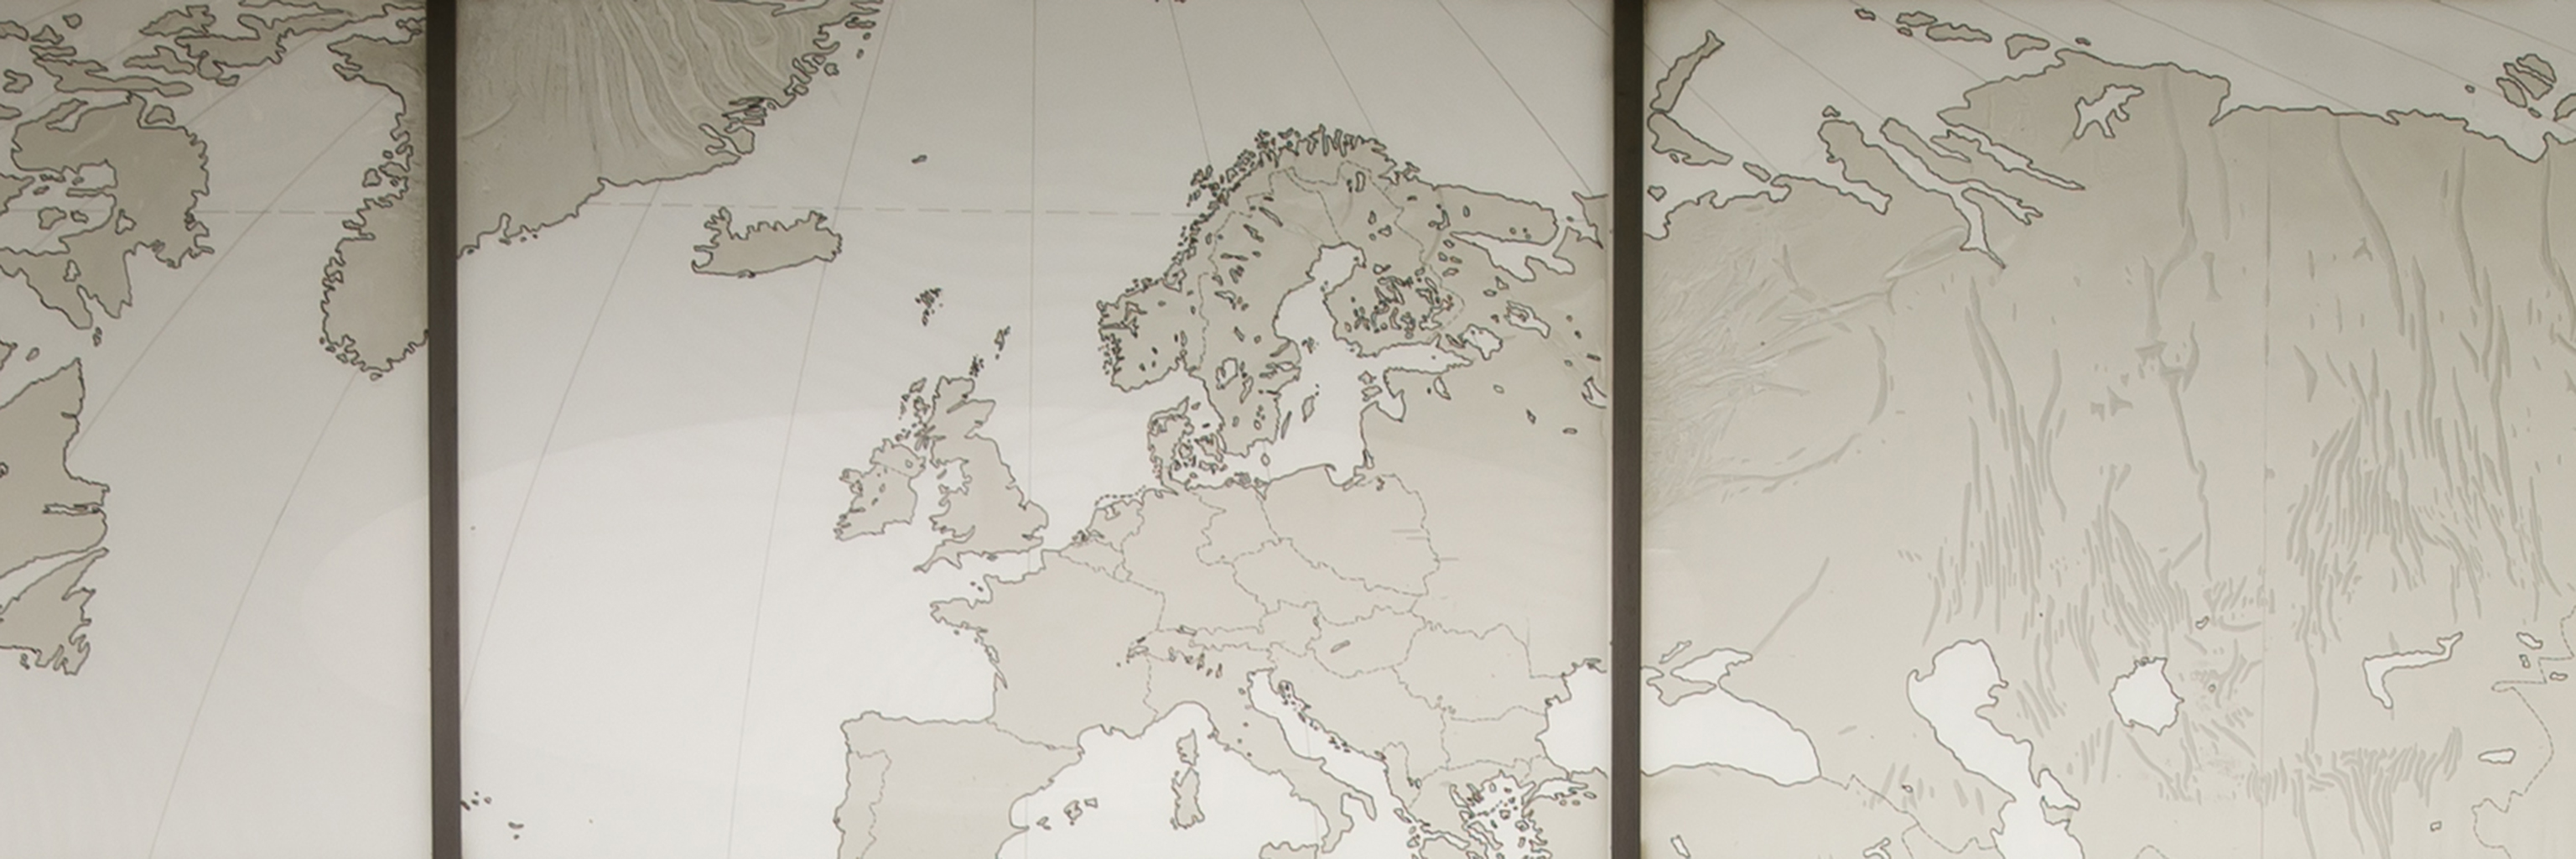 World map display as seen on the Indiana University Bloomington campus.